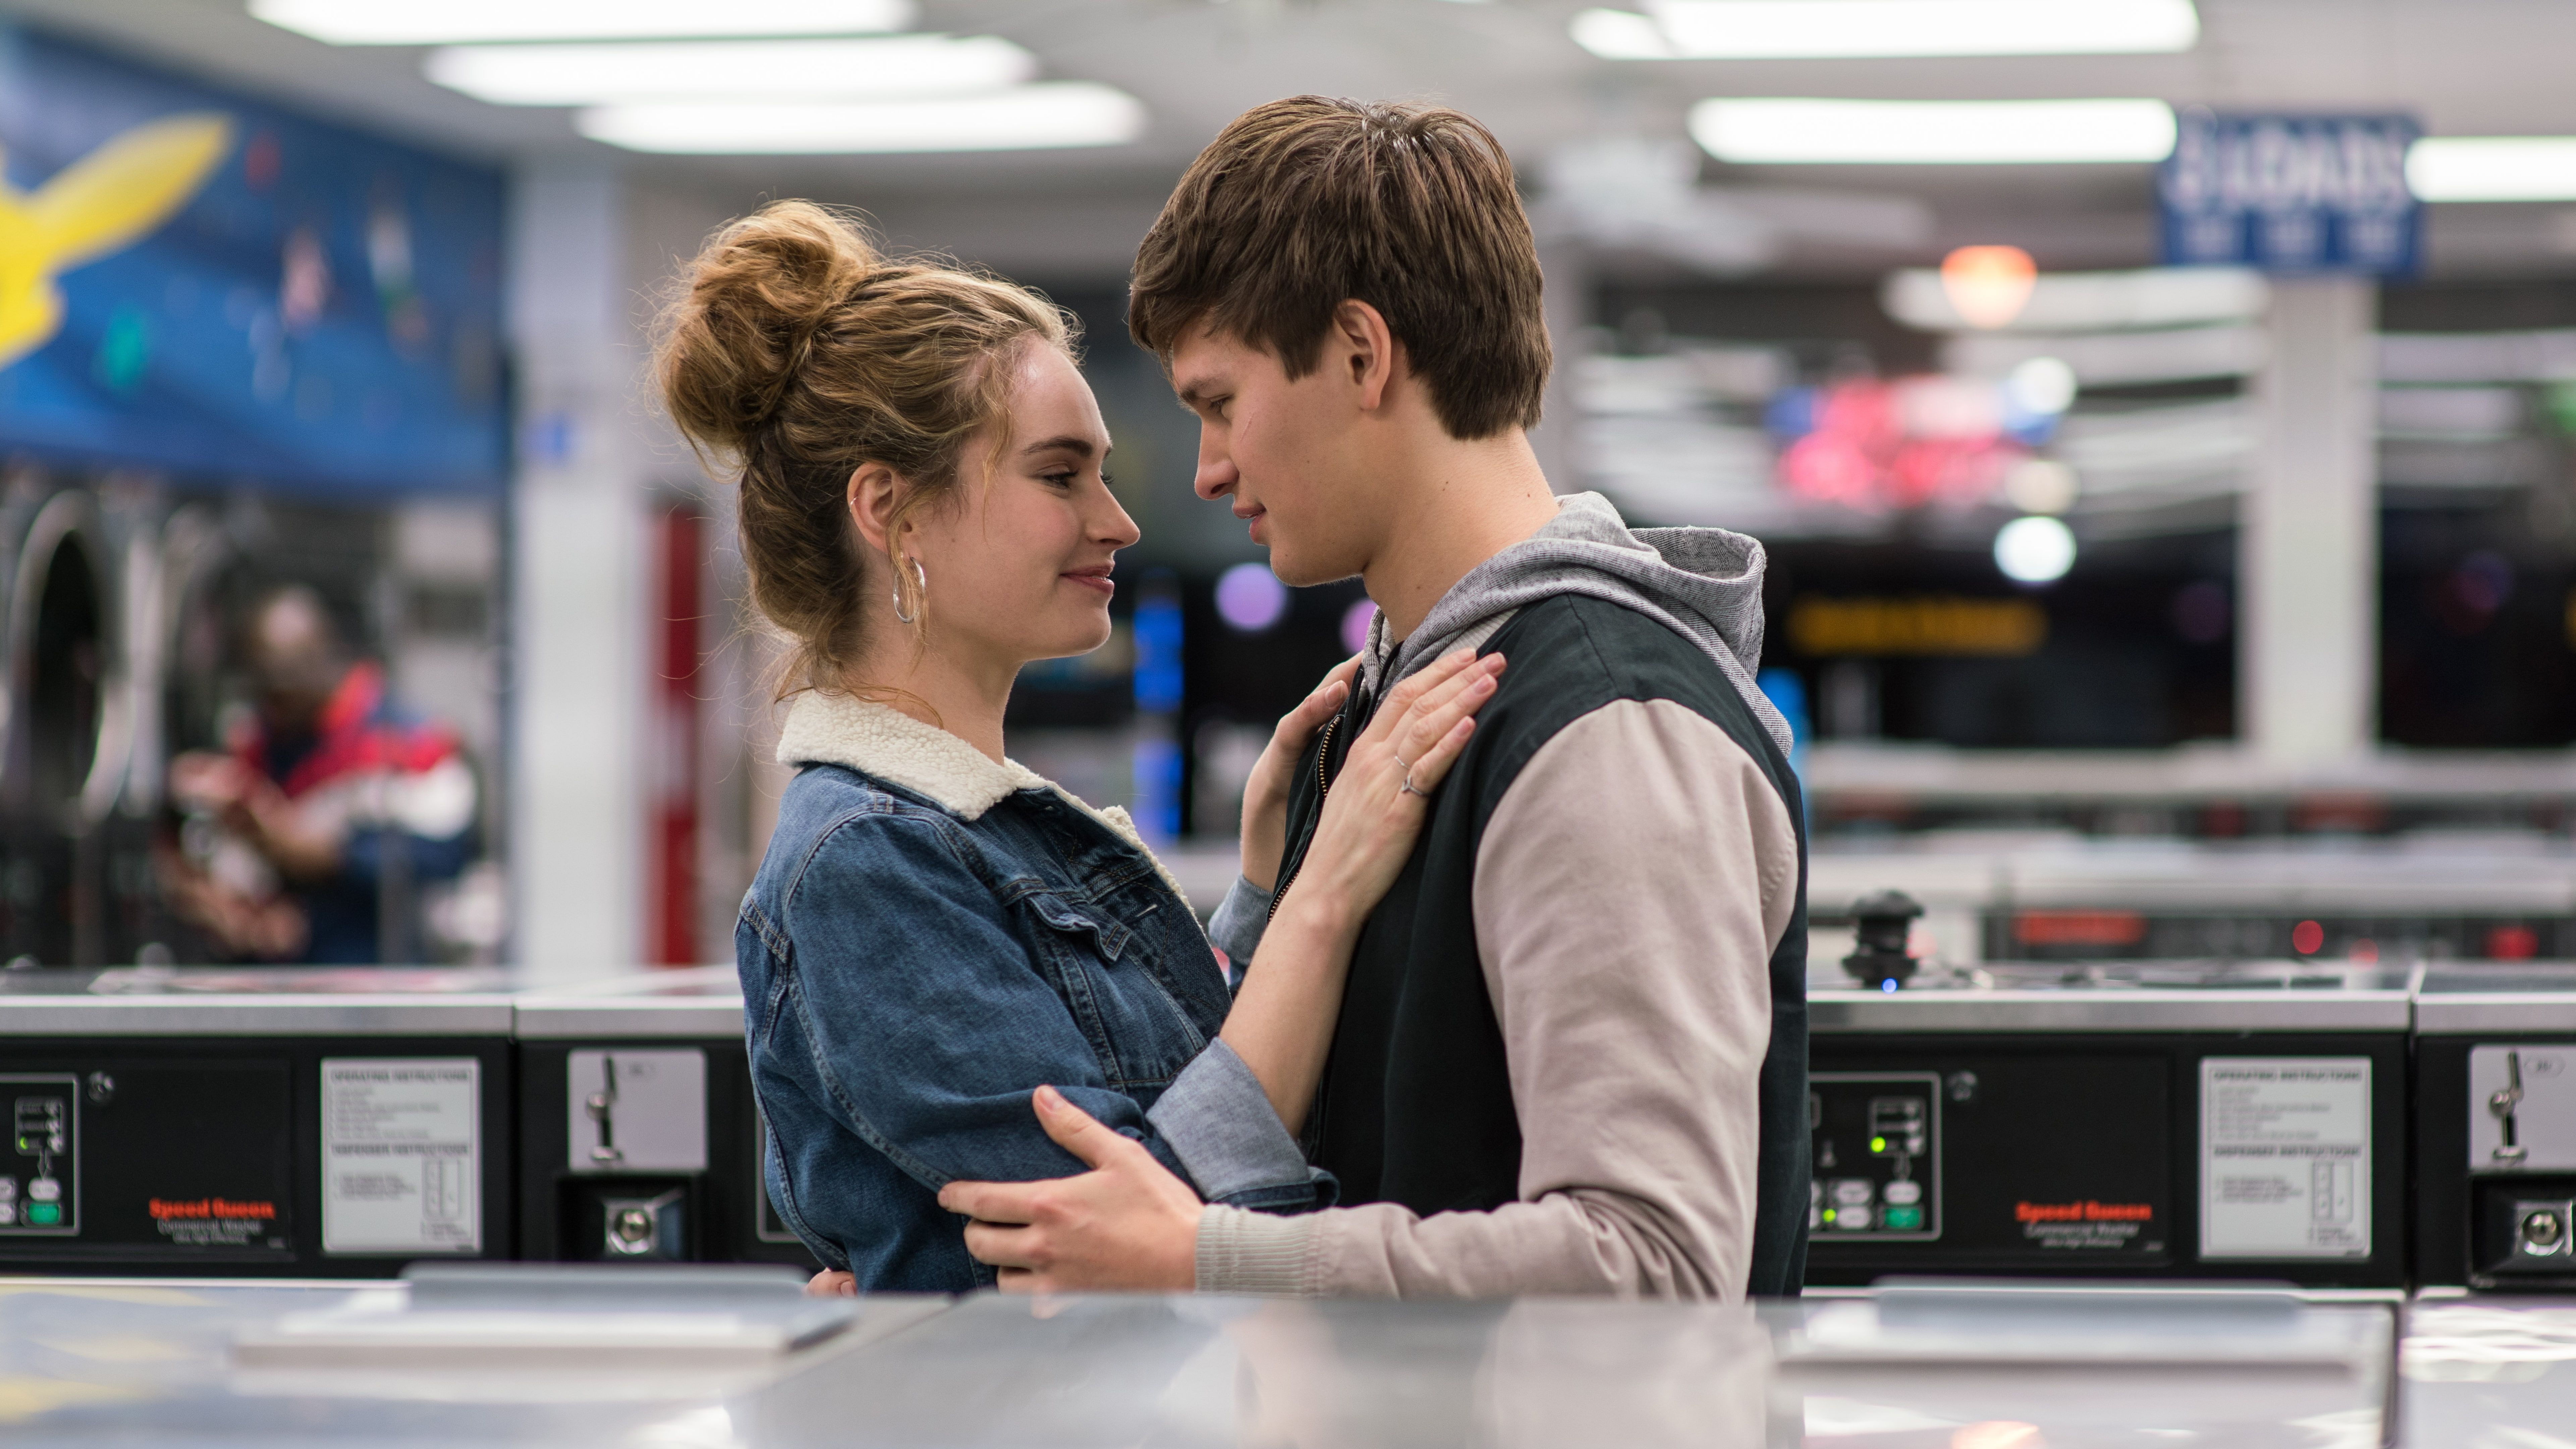 Ansel Baby Driver Elgort James Lily 8k Wallpaper Hdwallpaper Desktop In 2020 Film Baby Driver Baby Driver Ansel Elgort Baby Driver